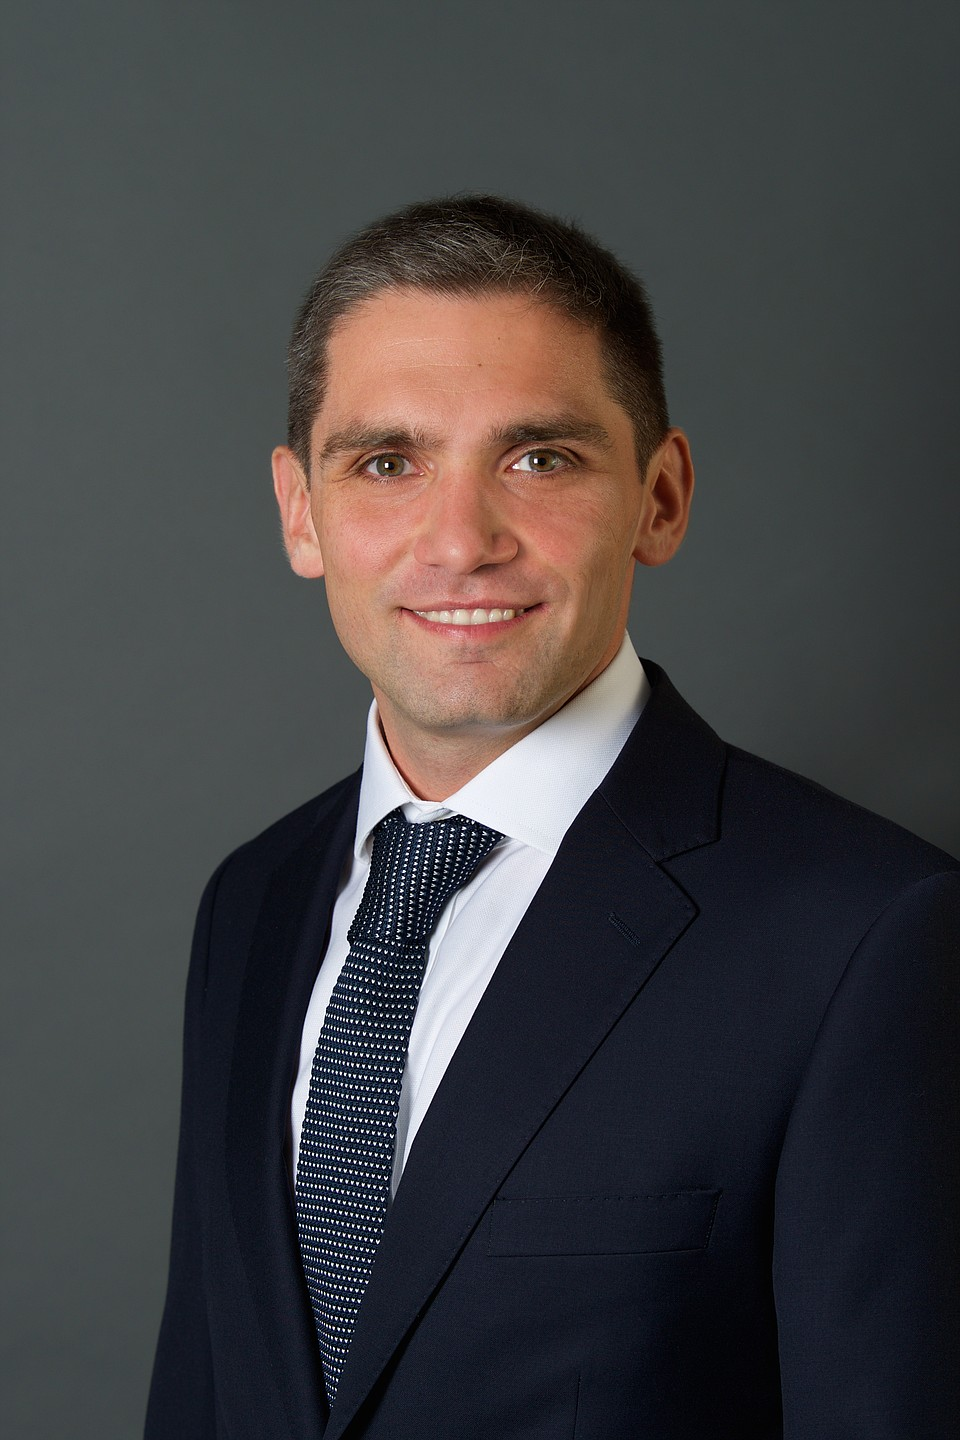 Stefano Braganti, Executive Vice President of HAP Construction, On Rethinking The Supply Chain Post-Covid